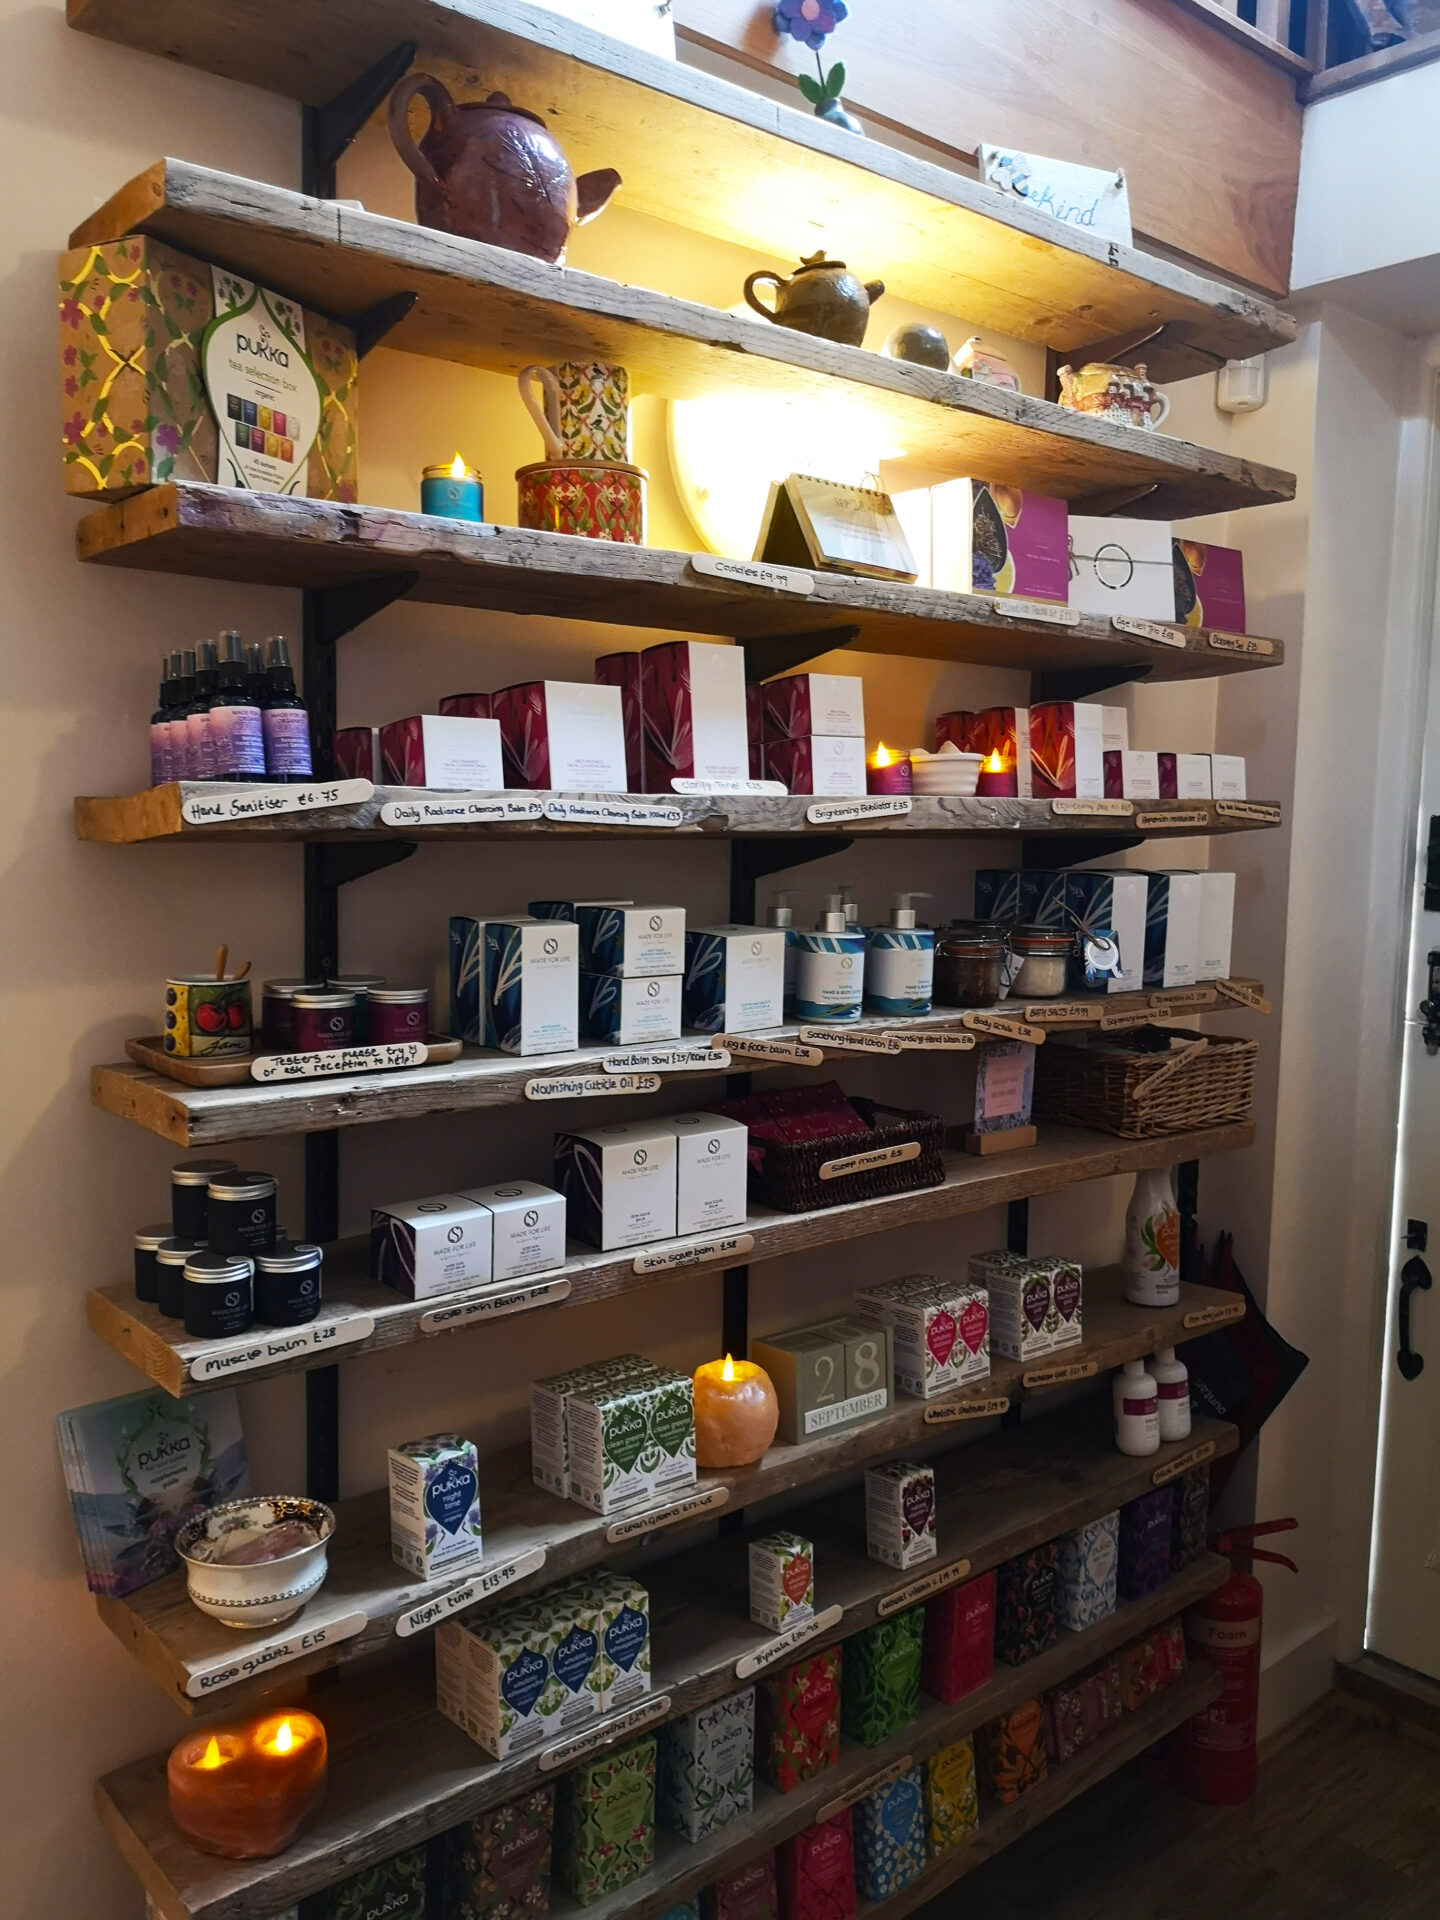 The Granary Spa, Pure Bliss Treatment, Spa Day, Spa Review, Kent Business, Rural Retreat, Things to Do in Kent, Kent, Massage, Holistic Beauty, Beauty Spa, the Frenchie Mummy